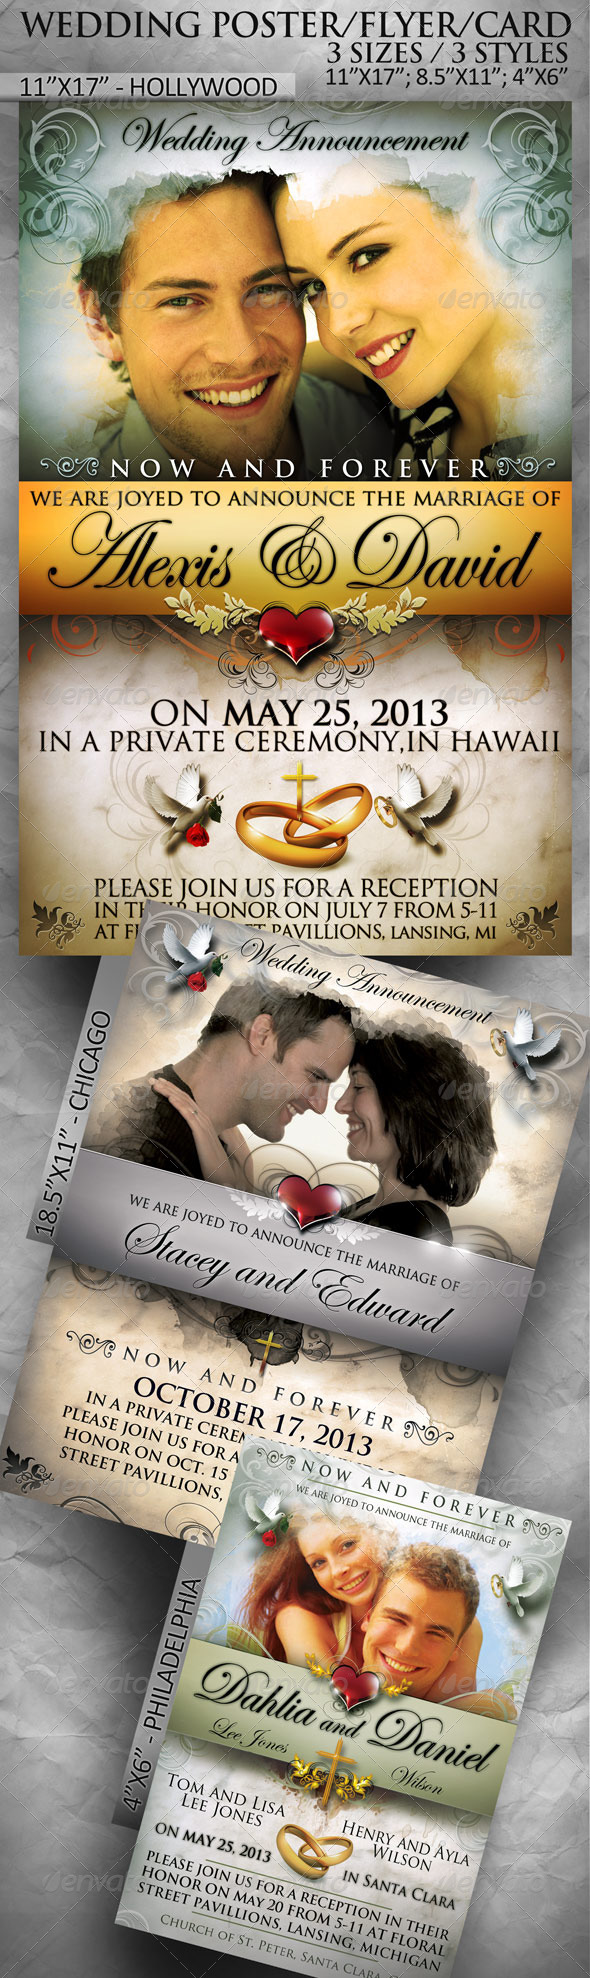 Wedding Poster / Flyer / Card in 3 sizes - Weddings Cards & Invites